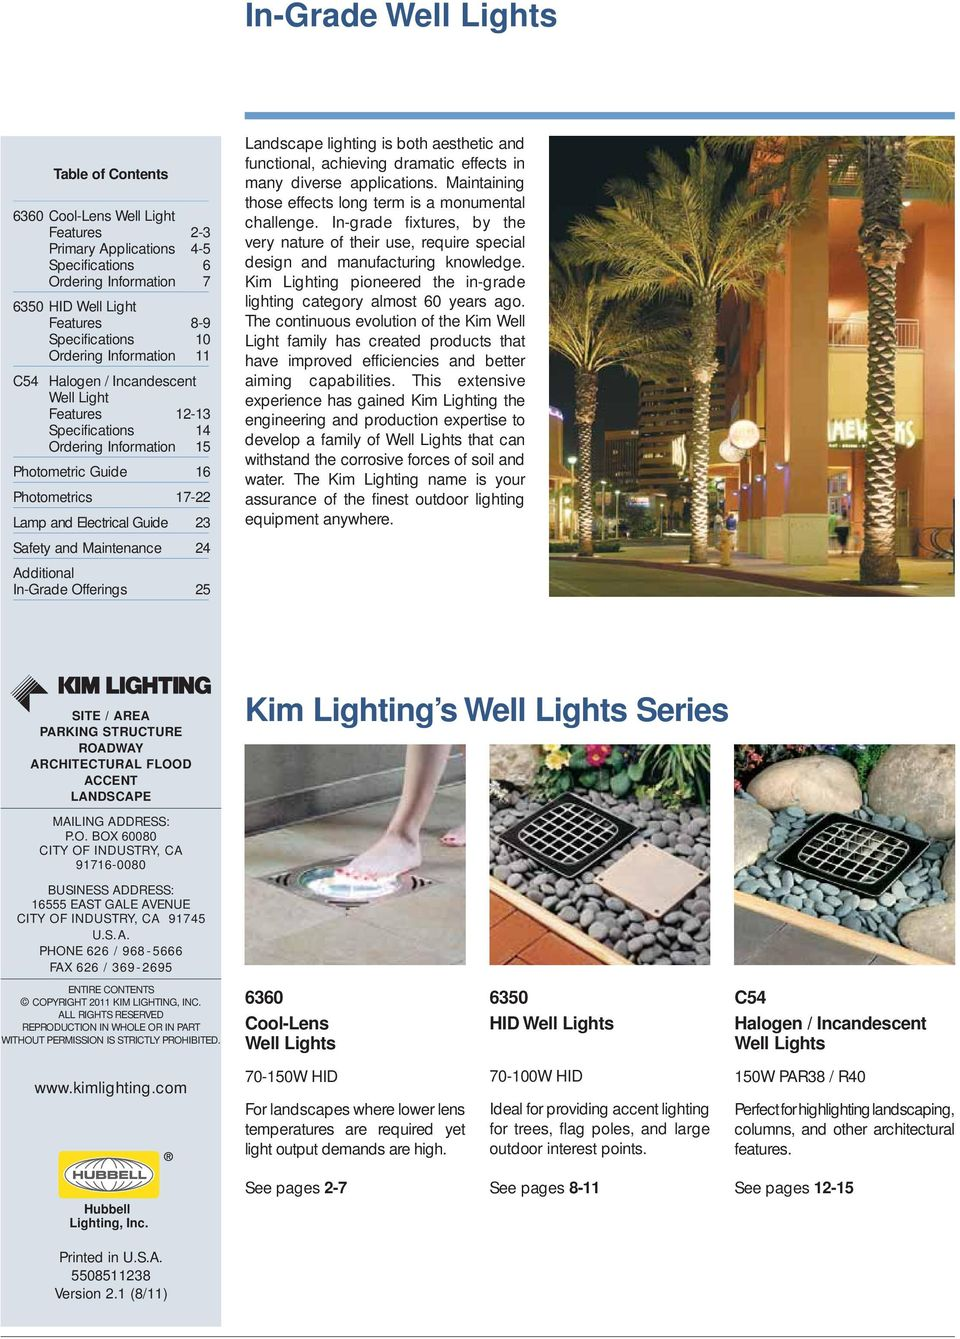 Maintenance 24 Additional In-Grade Offerings 25 Landscape lighting is both aesthetic and functional, achieving dramatic effects in many diverse applications.